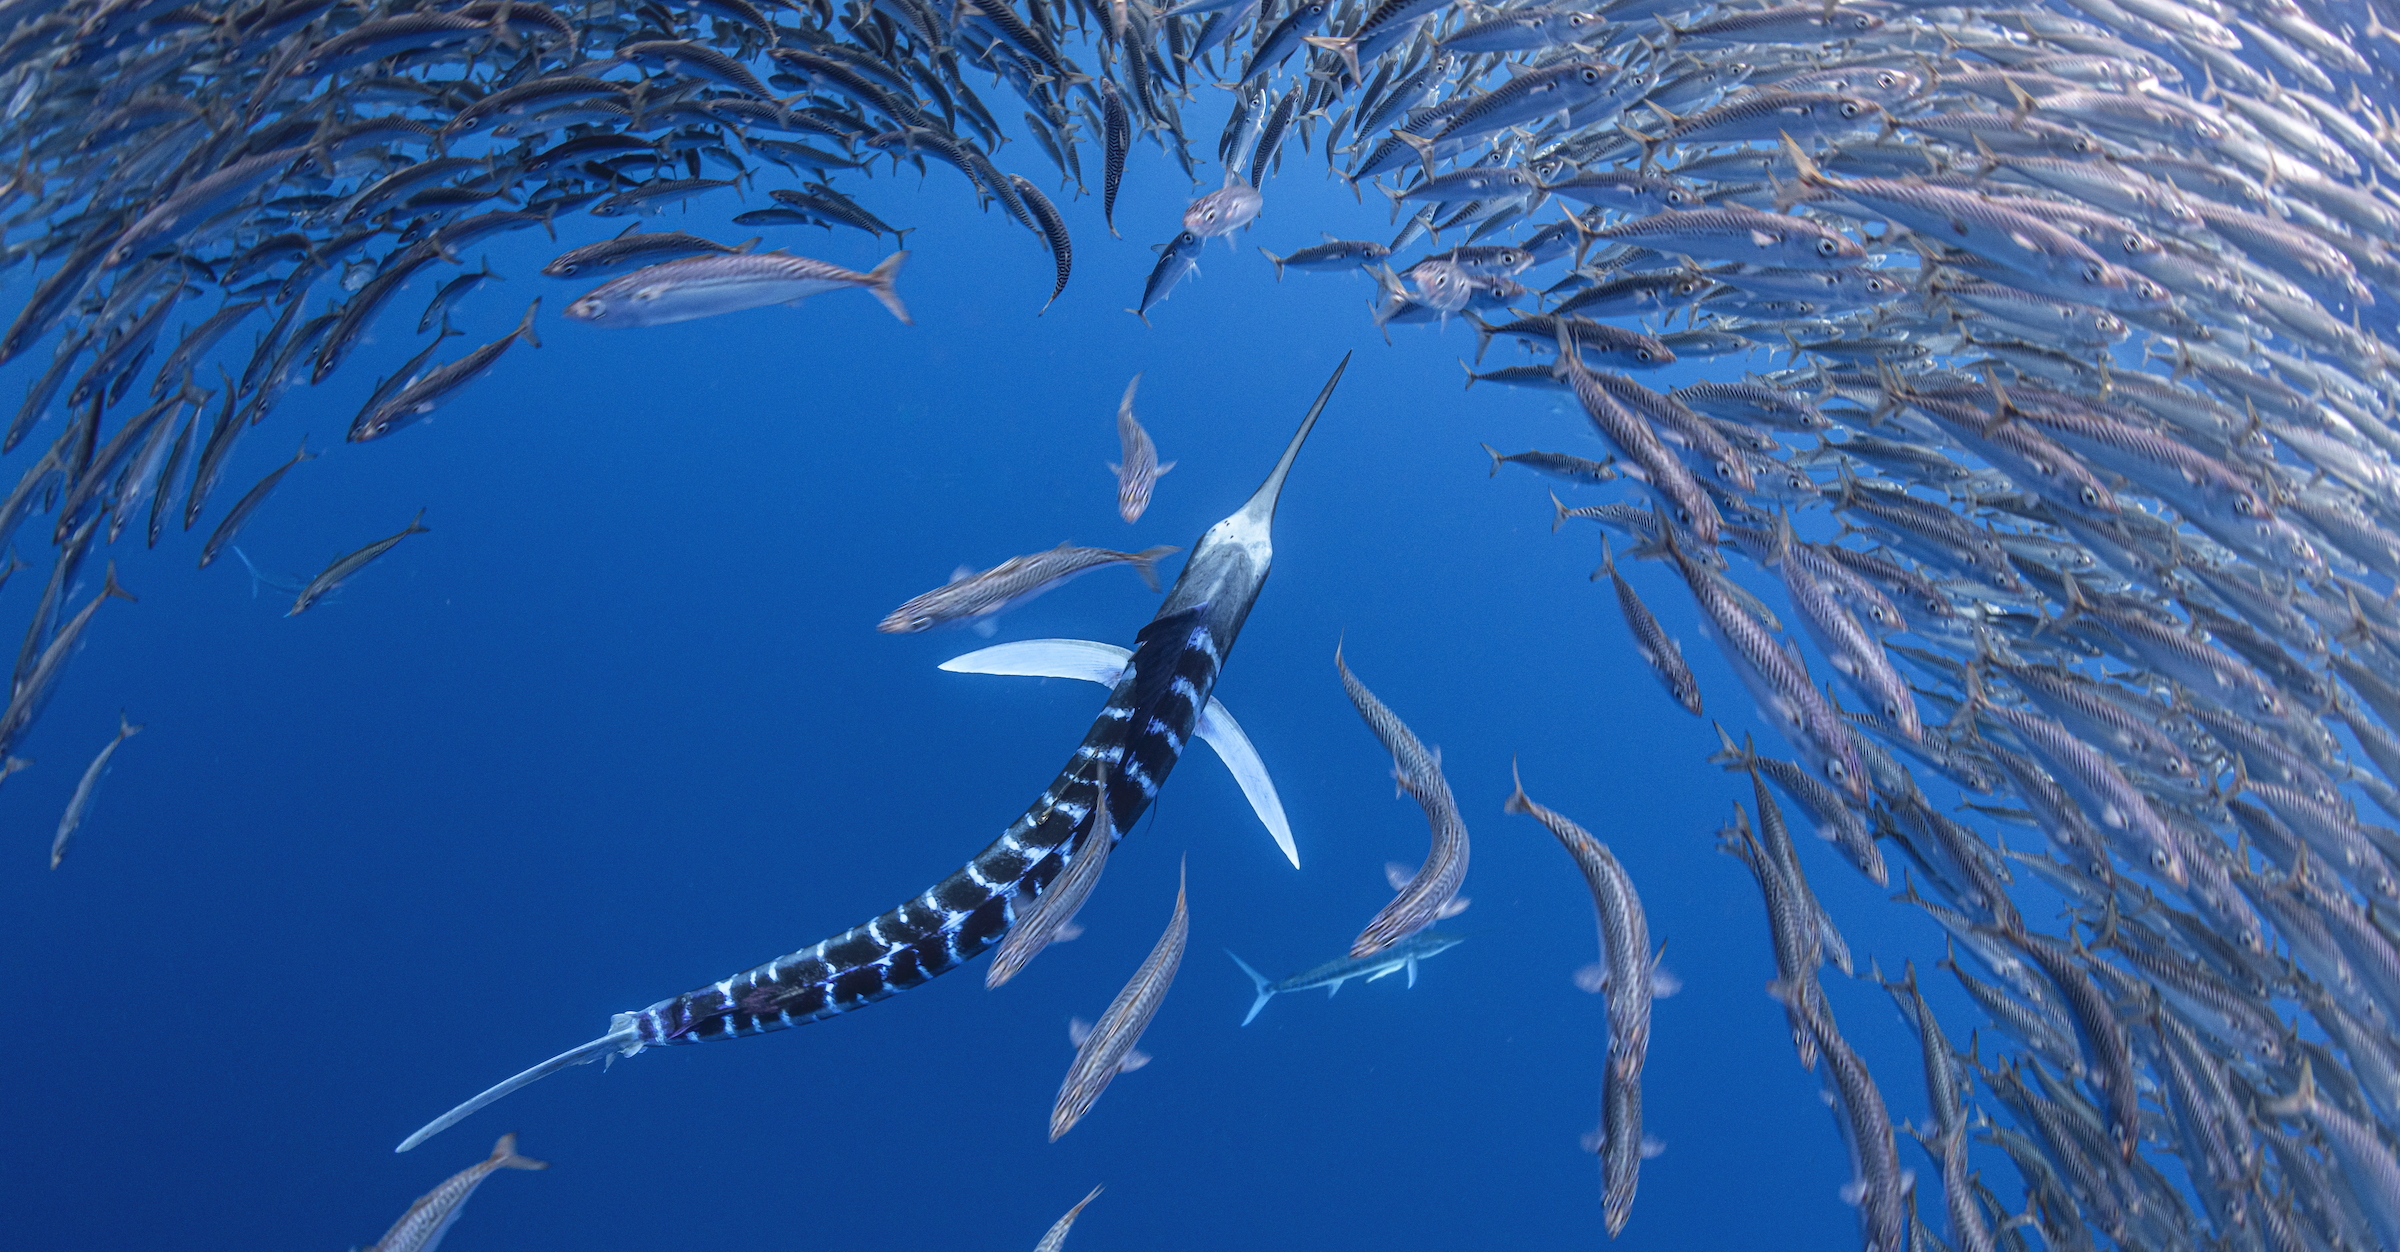 A striped marlin pursues baitfish off the coast of Baja California Sur.